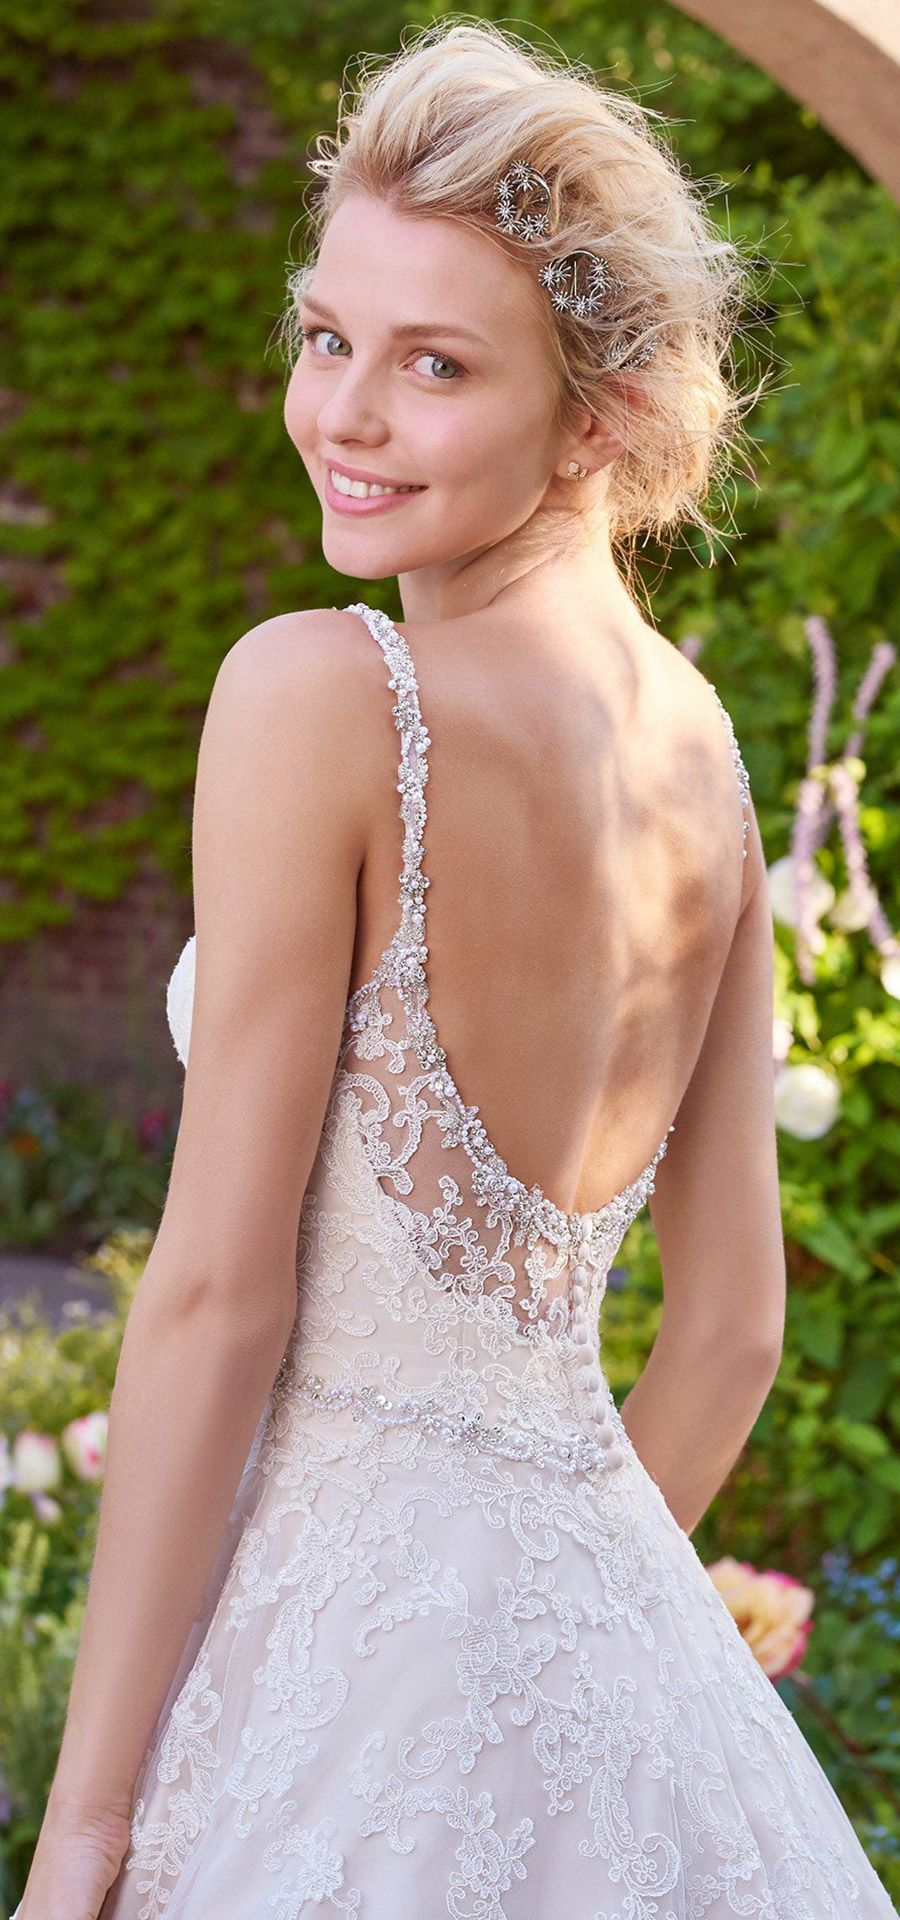 """Alluring illusion back detail on our #GownoftheWeek, #RebeccaIngram """"Allison"""". We're in love! \\\♥/// #dressoftheweek #gownoftheweek #bridal #wedding #weddingdress #weddinggown #bridalgown #dreamgown #dreamdress #engaged #inspiration #bridalinspiration #bride #weddinginspiration #weddingdresses #romantic #lace #maggiesottero"""